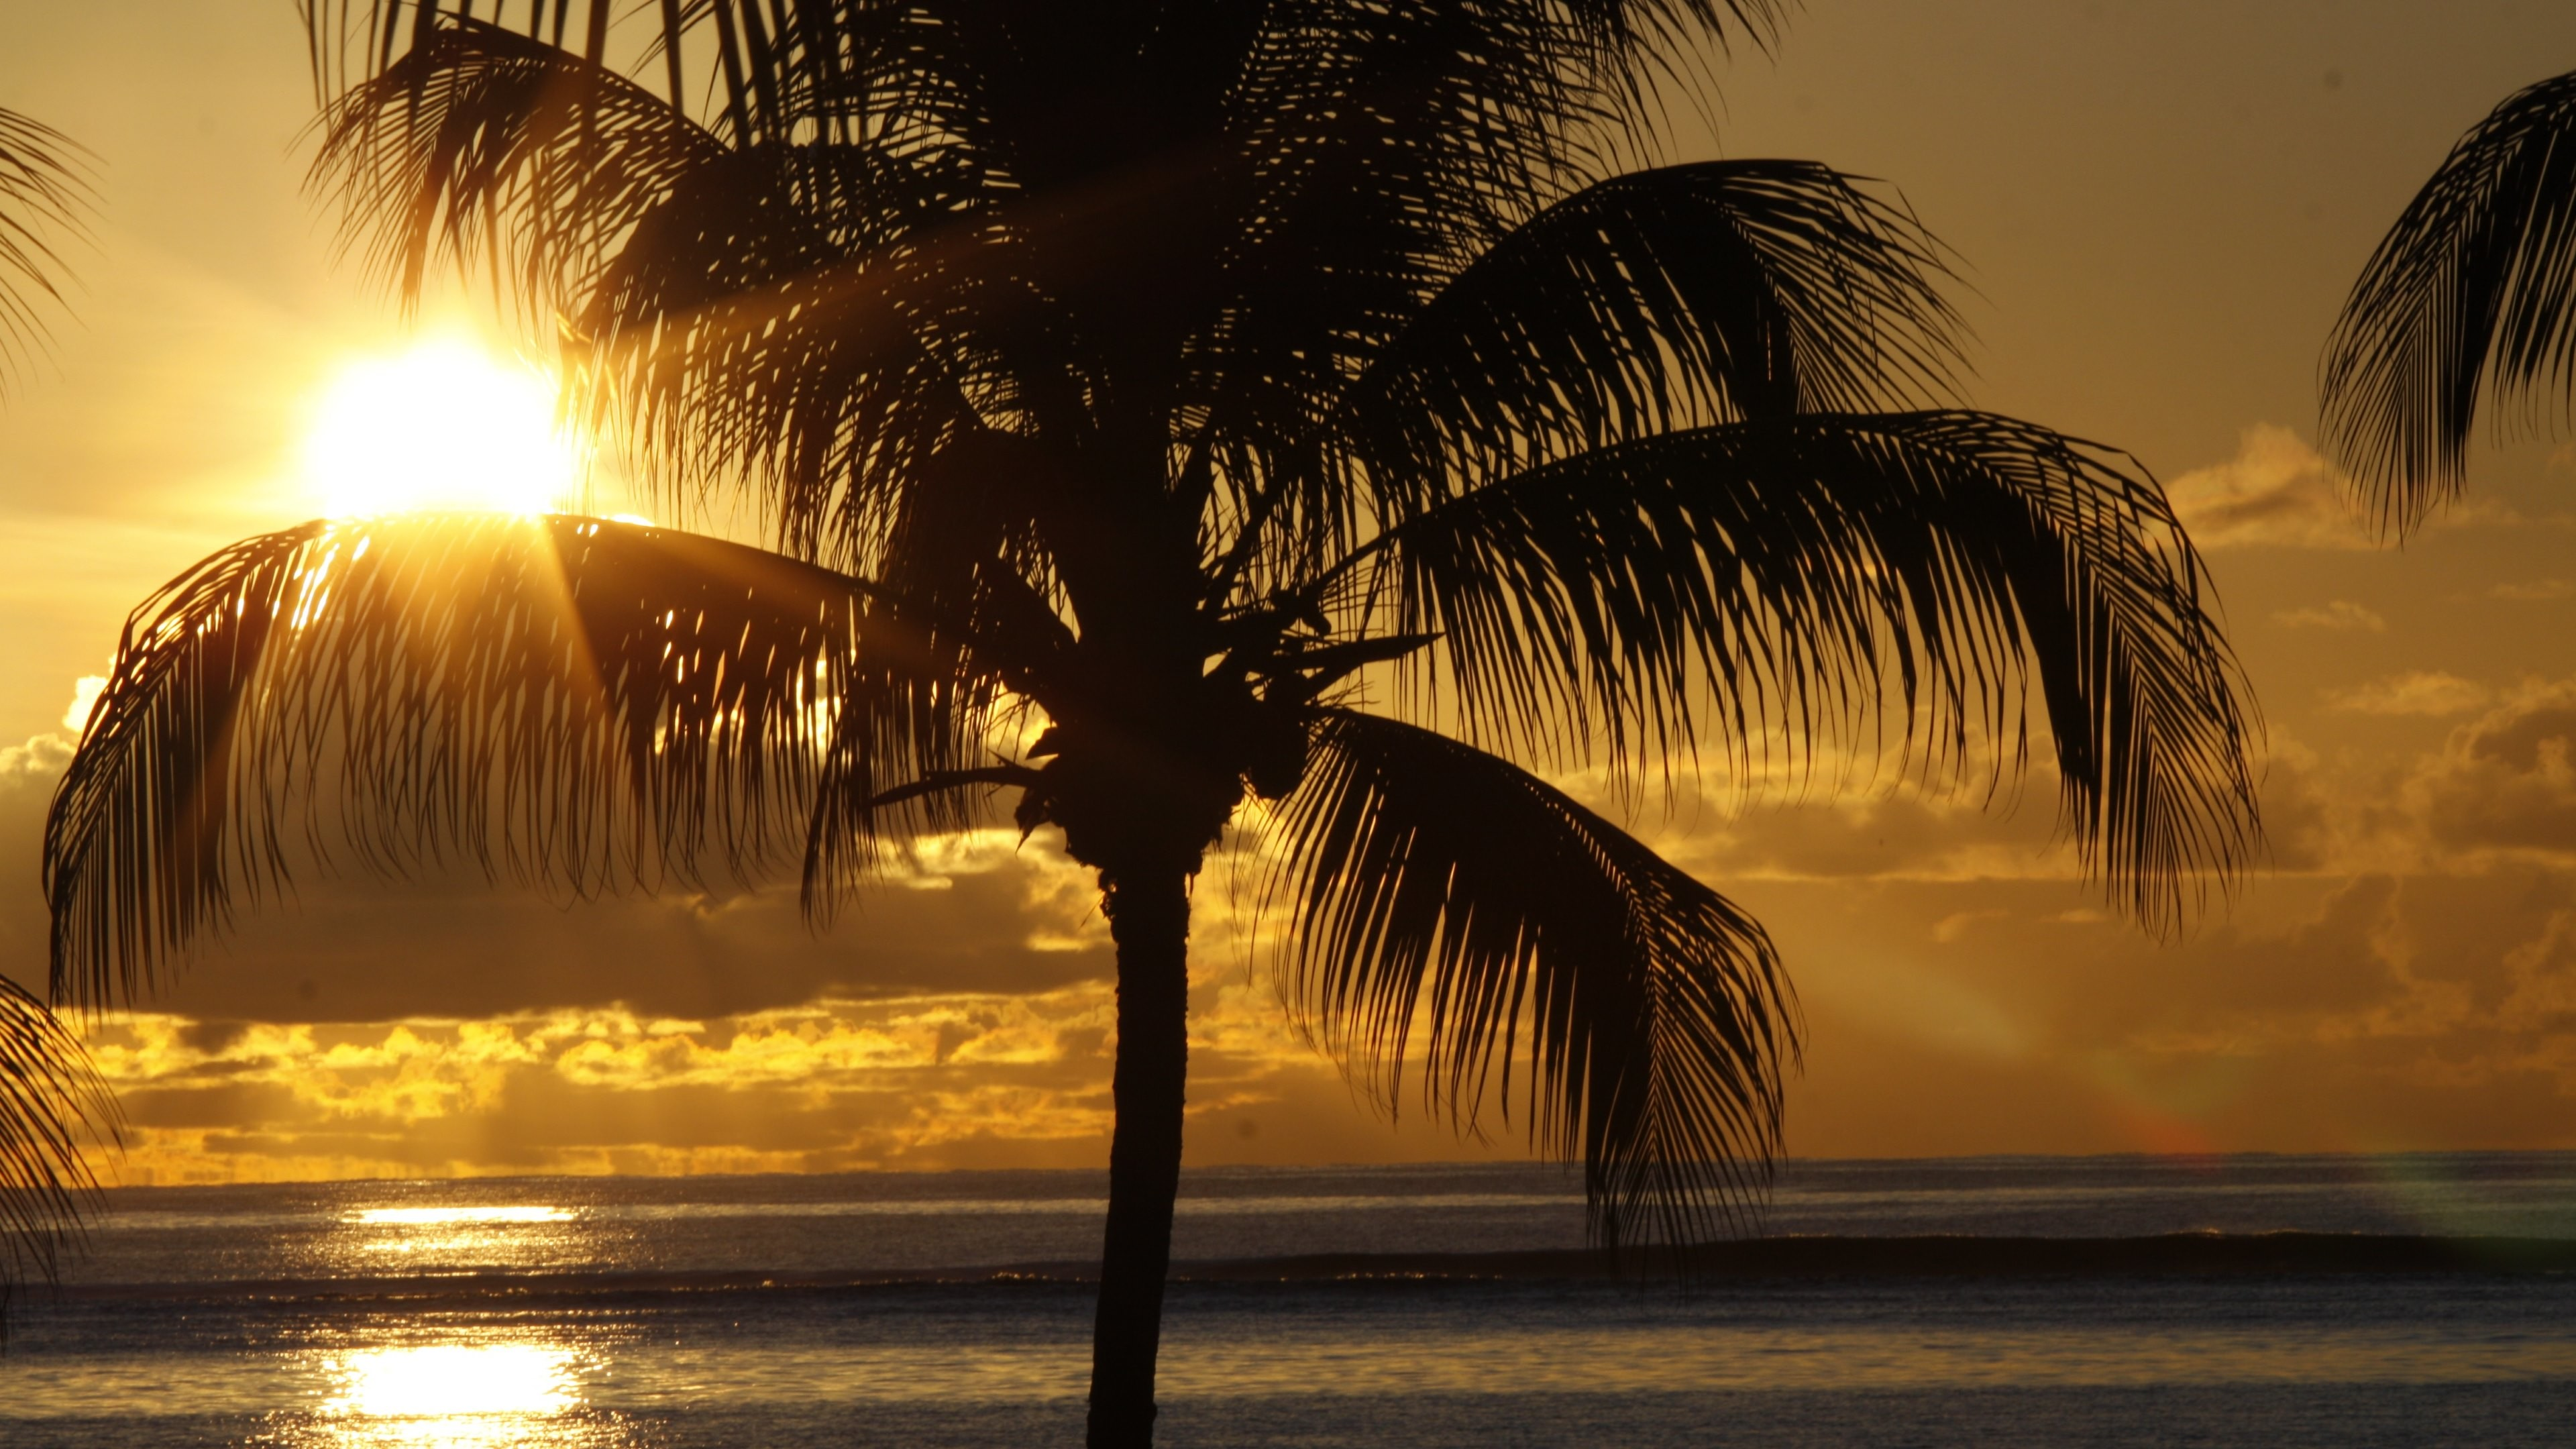 Wallpaper: Sunset and palm on tropical beach